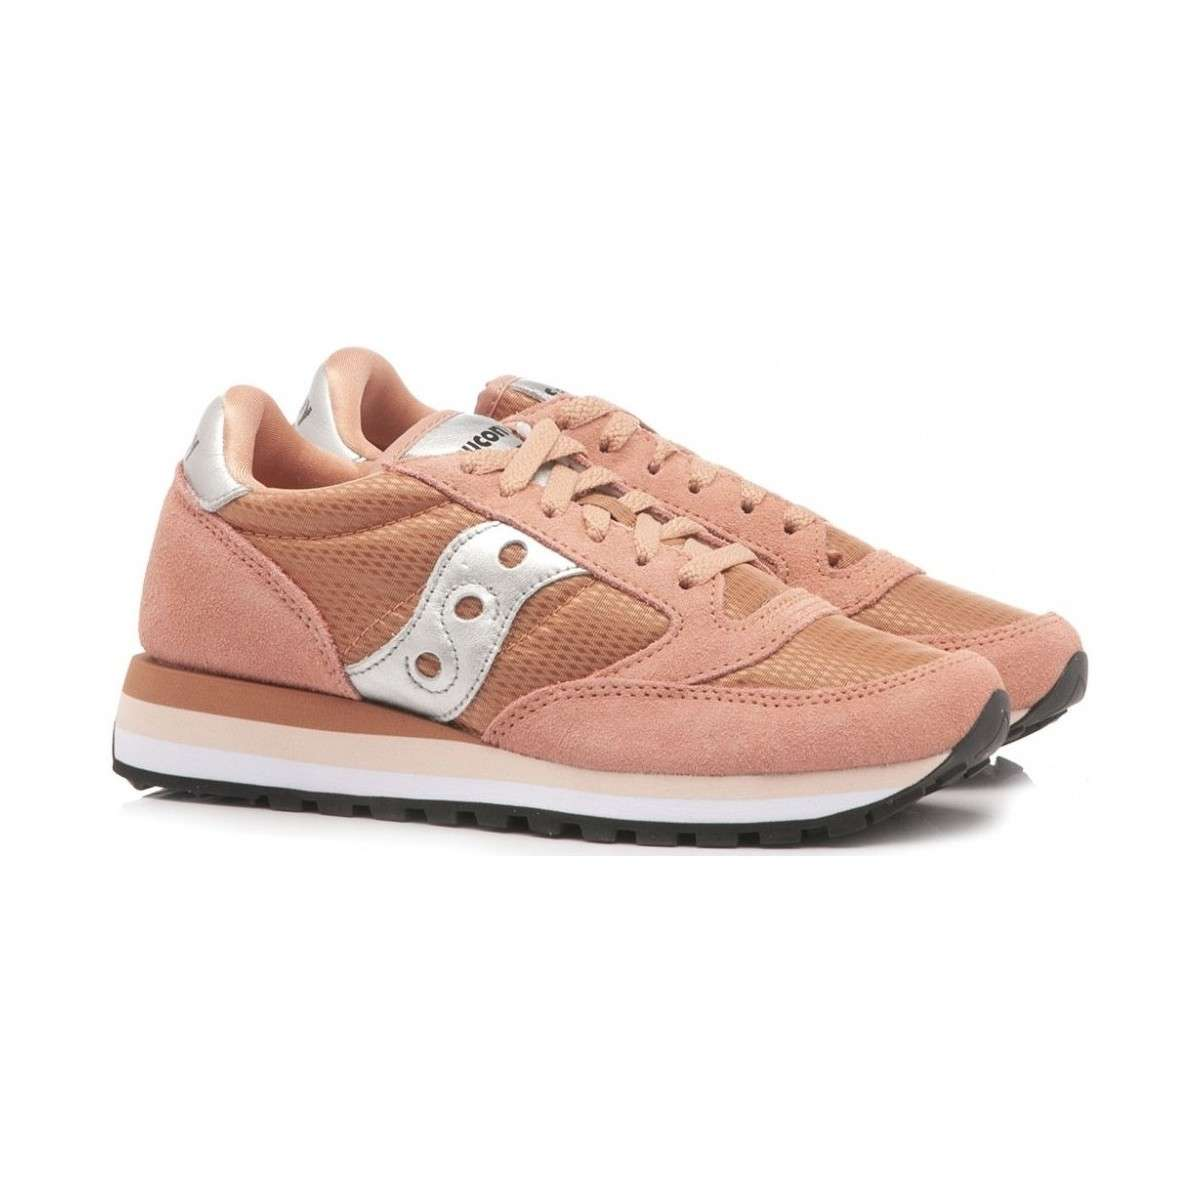 https://www.parmax.com/media/catalog/product/a/i/AI-Outlet_Parmax-Sneackers-Saucony-S60449-1-B.jpg